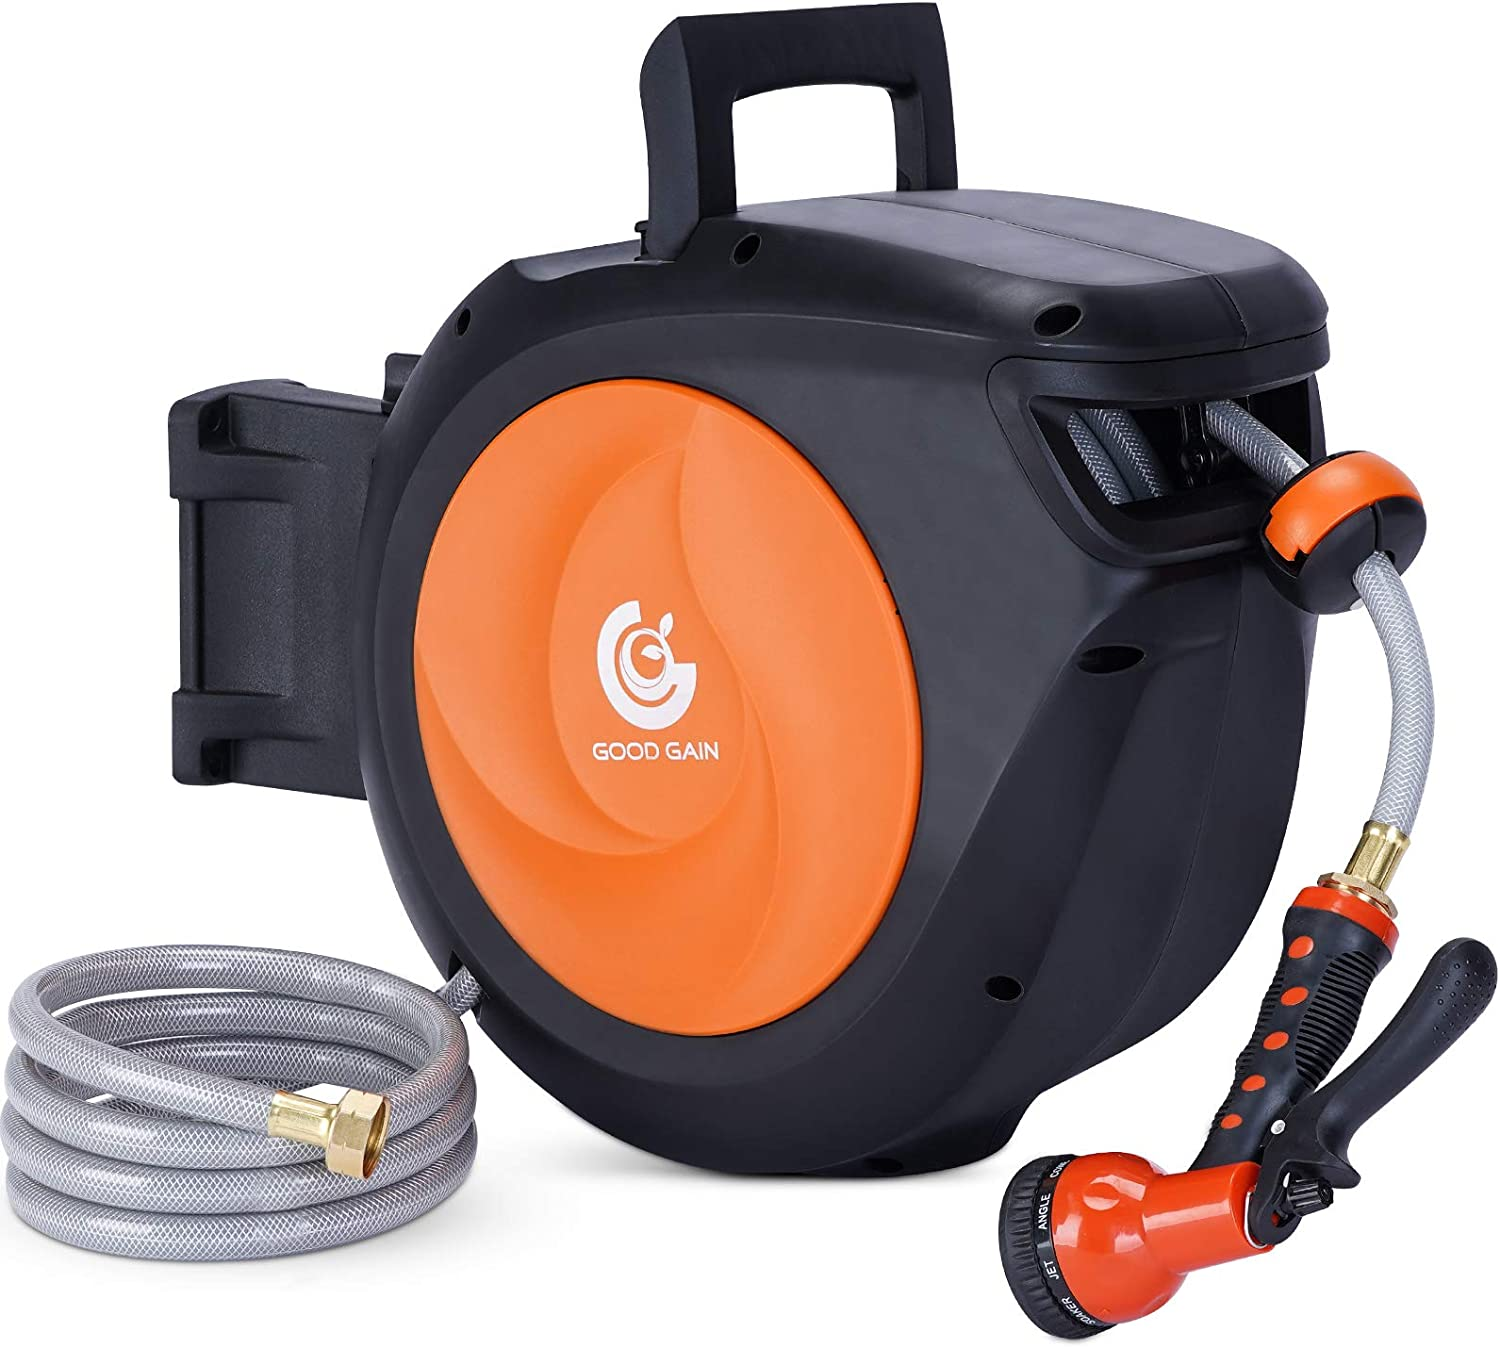 G GOOD GAIN Retractable Garden Hose Reel Wall Mounted1/2 Inch x 66 Feet, 9 Function Sprayer Gun with 5/8in, Super Heavy Duty, Any Length Lock, Slow Return System, Wall Mounted and 180°Swivel Bracket